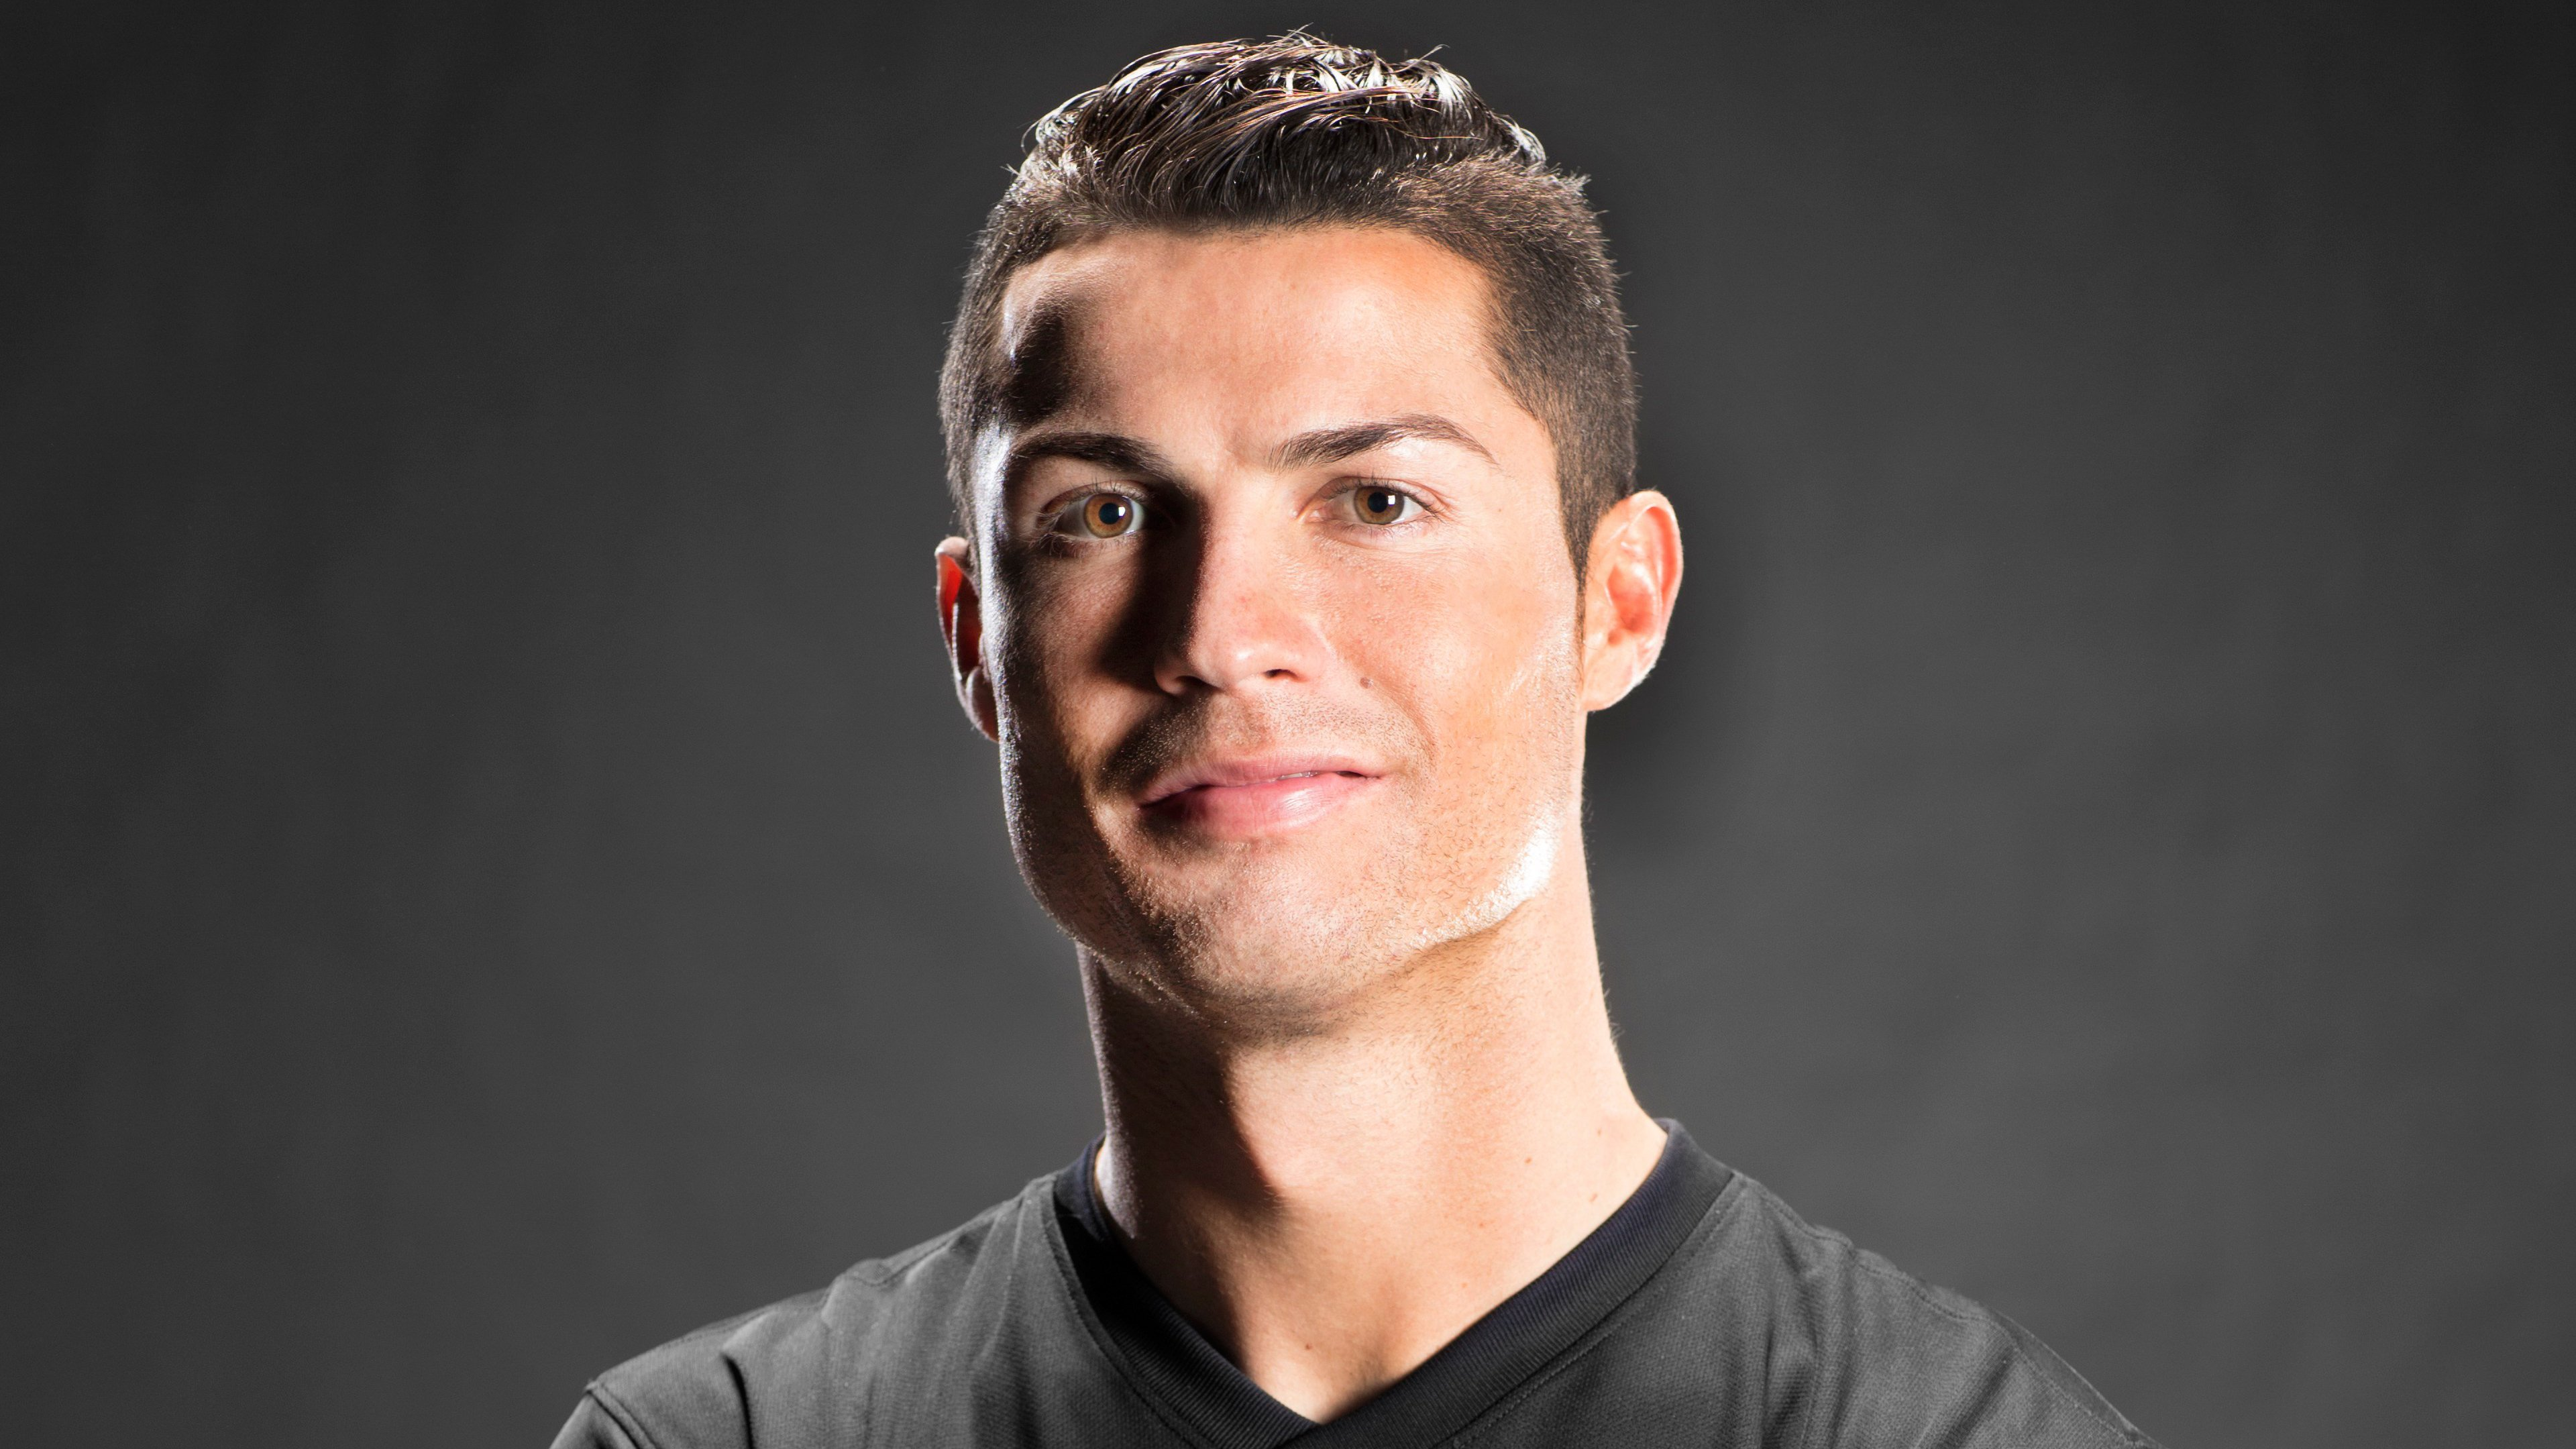 cristiano ronaldo 4k new 1547938895 - Cristiano Ronaldo 4k New - sports wallpapers, male celebrities wallpapers, hd-wallpapers, football wallpapers, cristiano ronaldo wallpapers, boys wallpapers, 4k-wallpapers